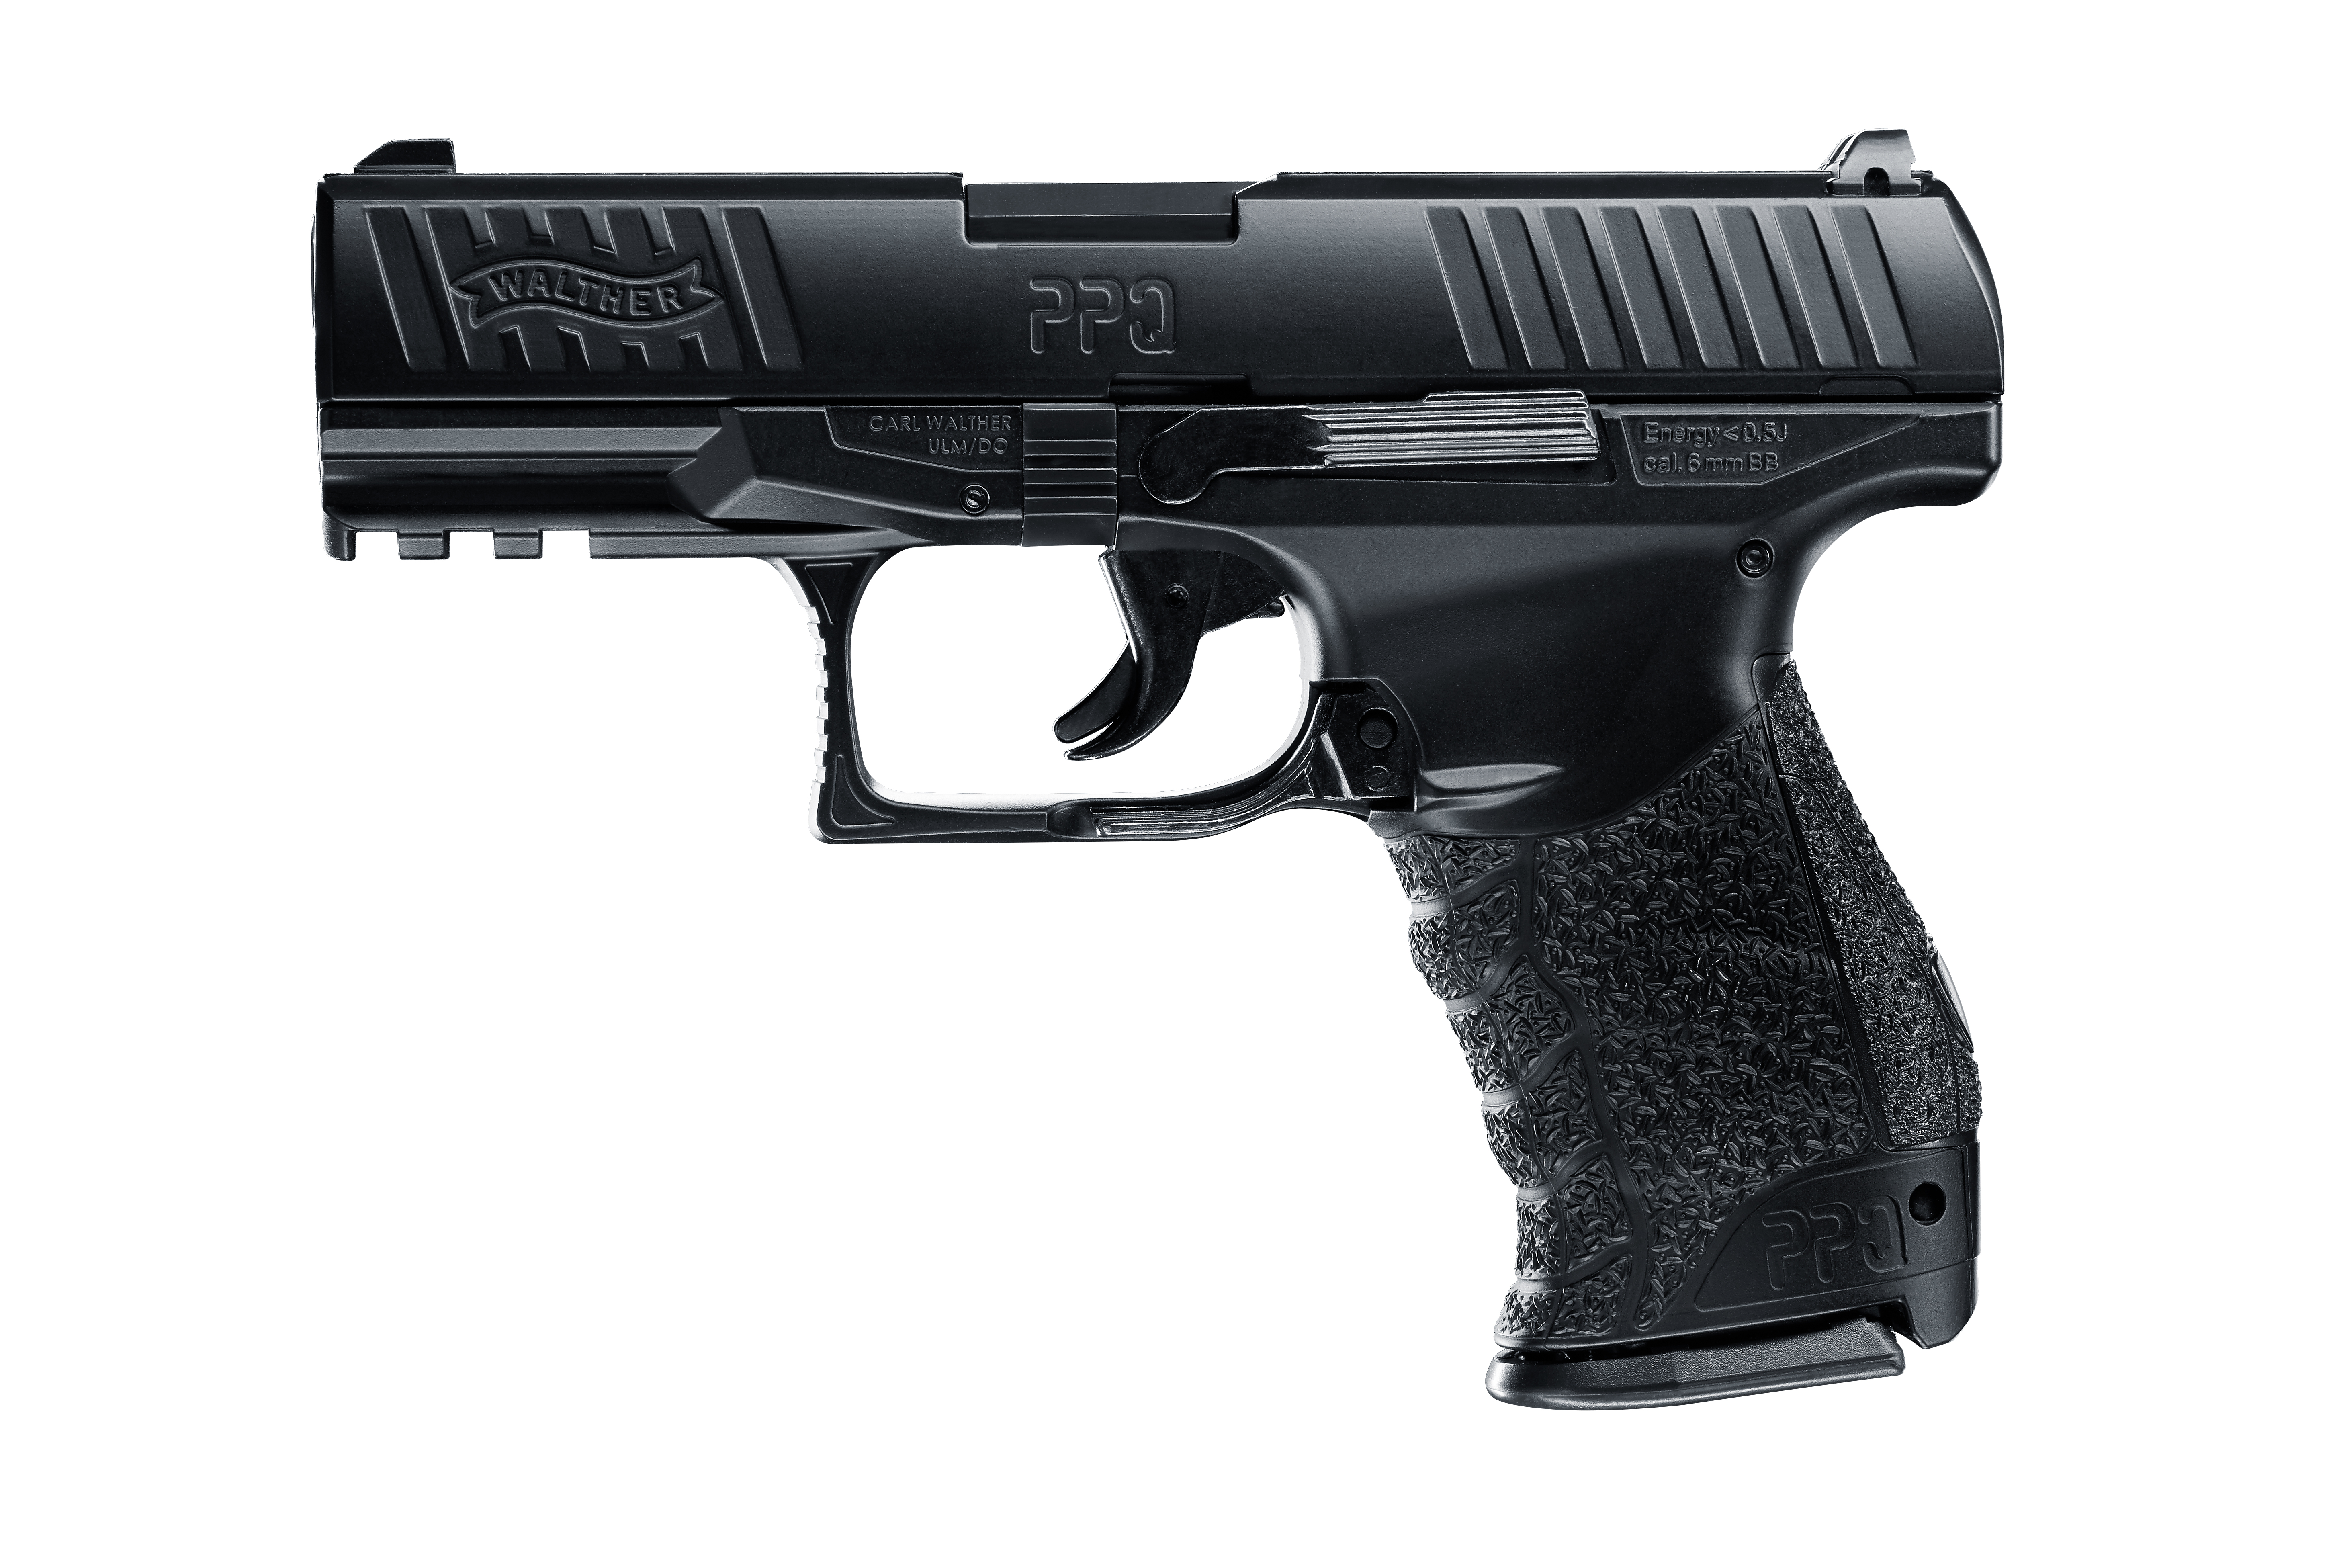 WALTHER (Umarex) Airsoft Spring Operated PPQ HME